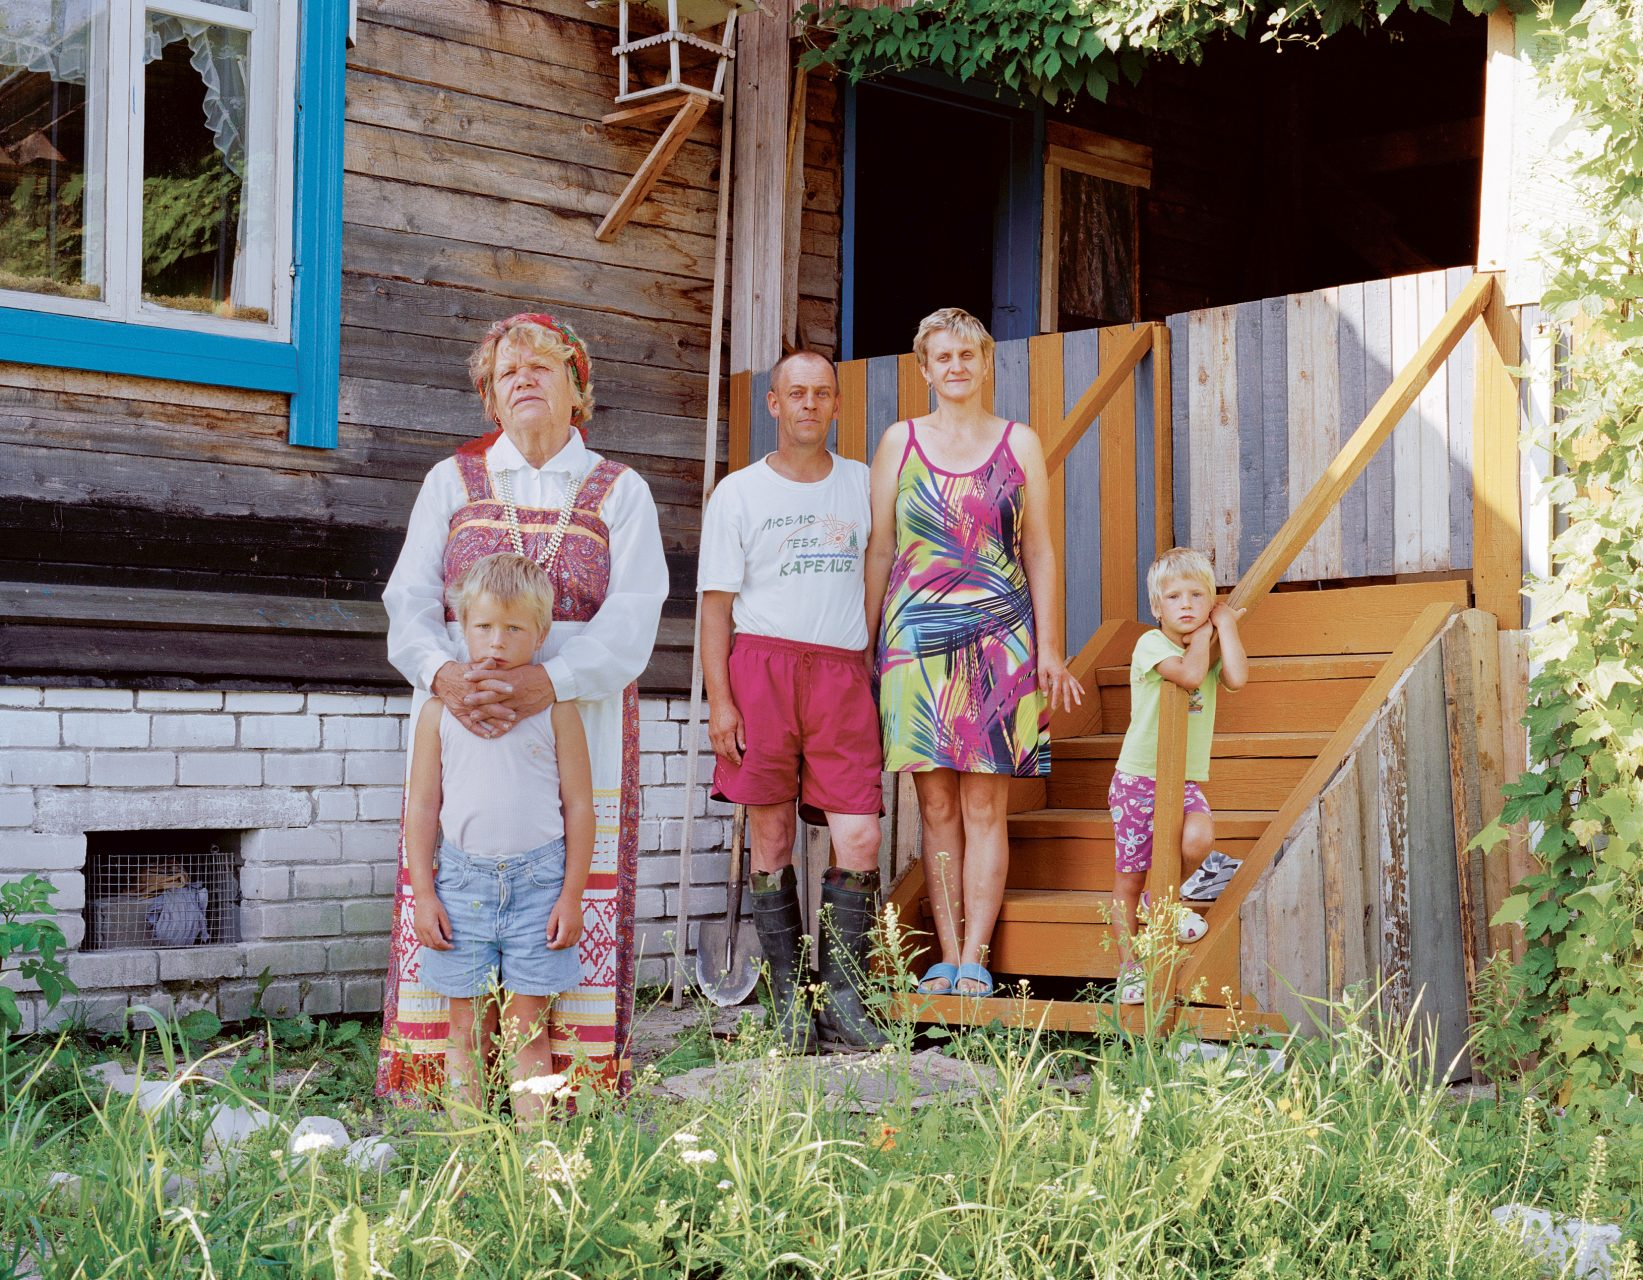 Russkie #14, c-print on dibond,100 x 120 cm, 2007